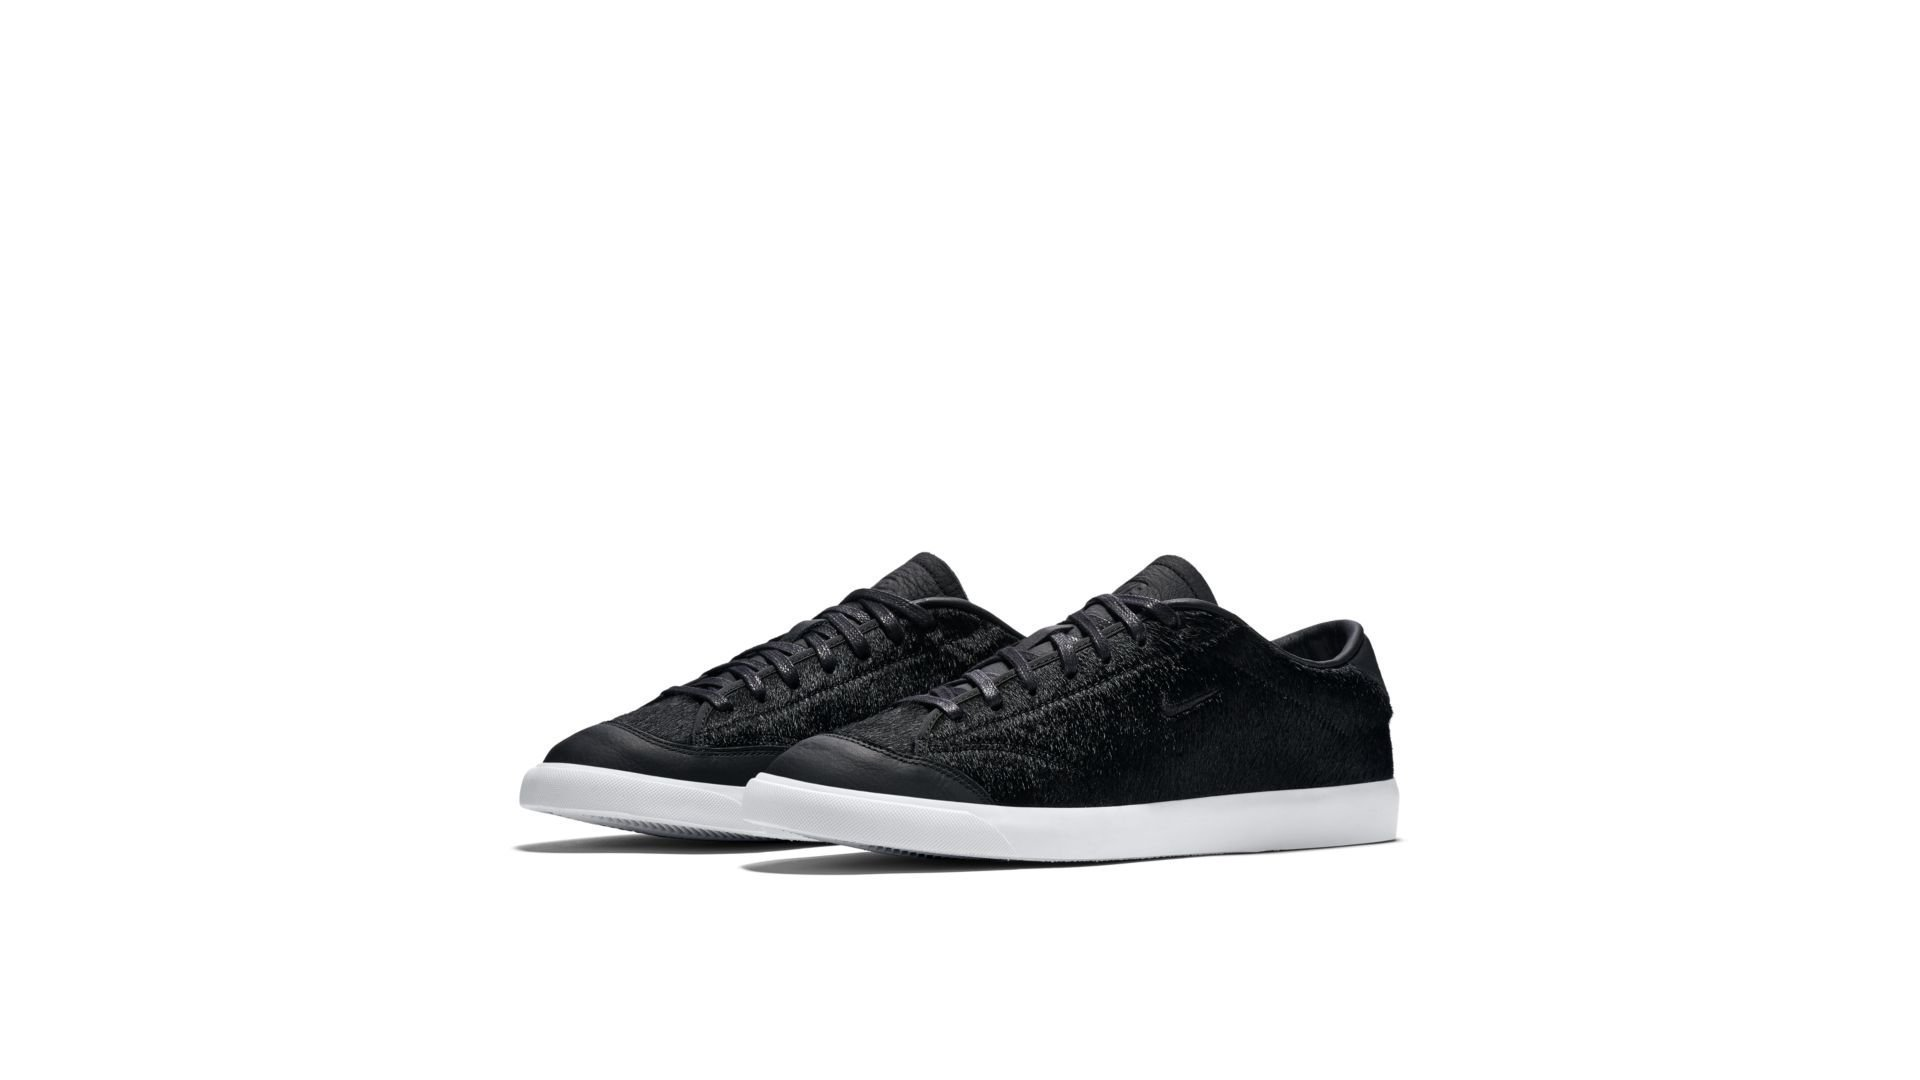 Nike All Court 2 Low LX Black White (875789-001)